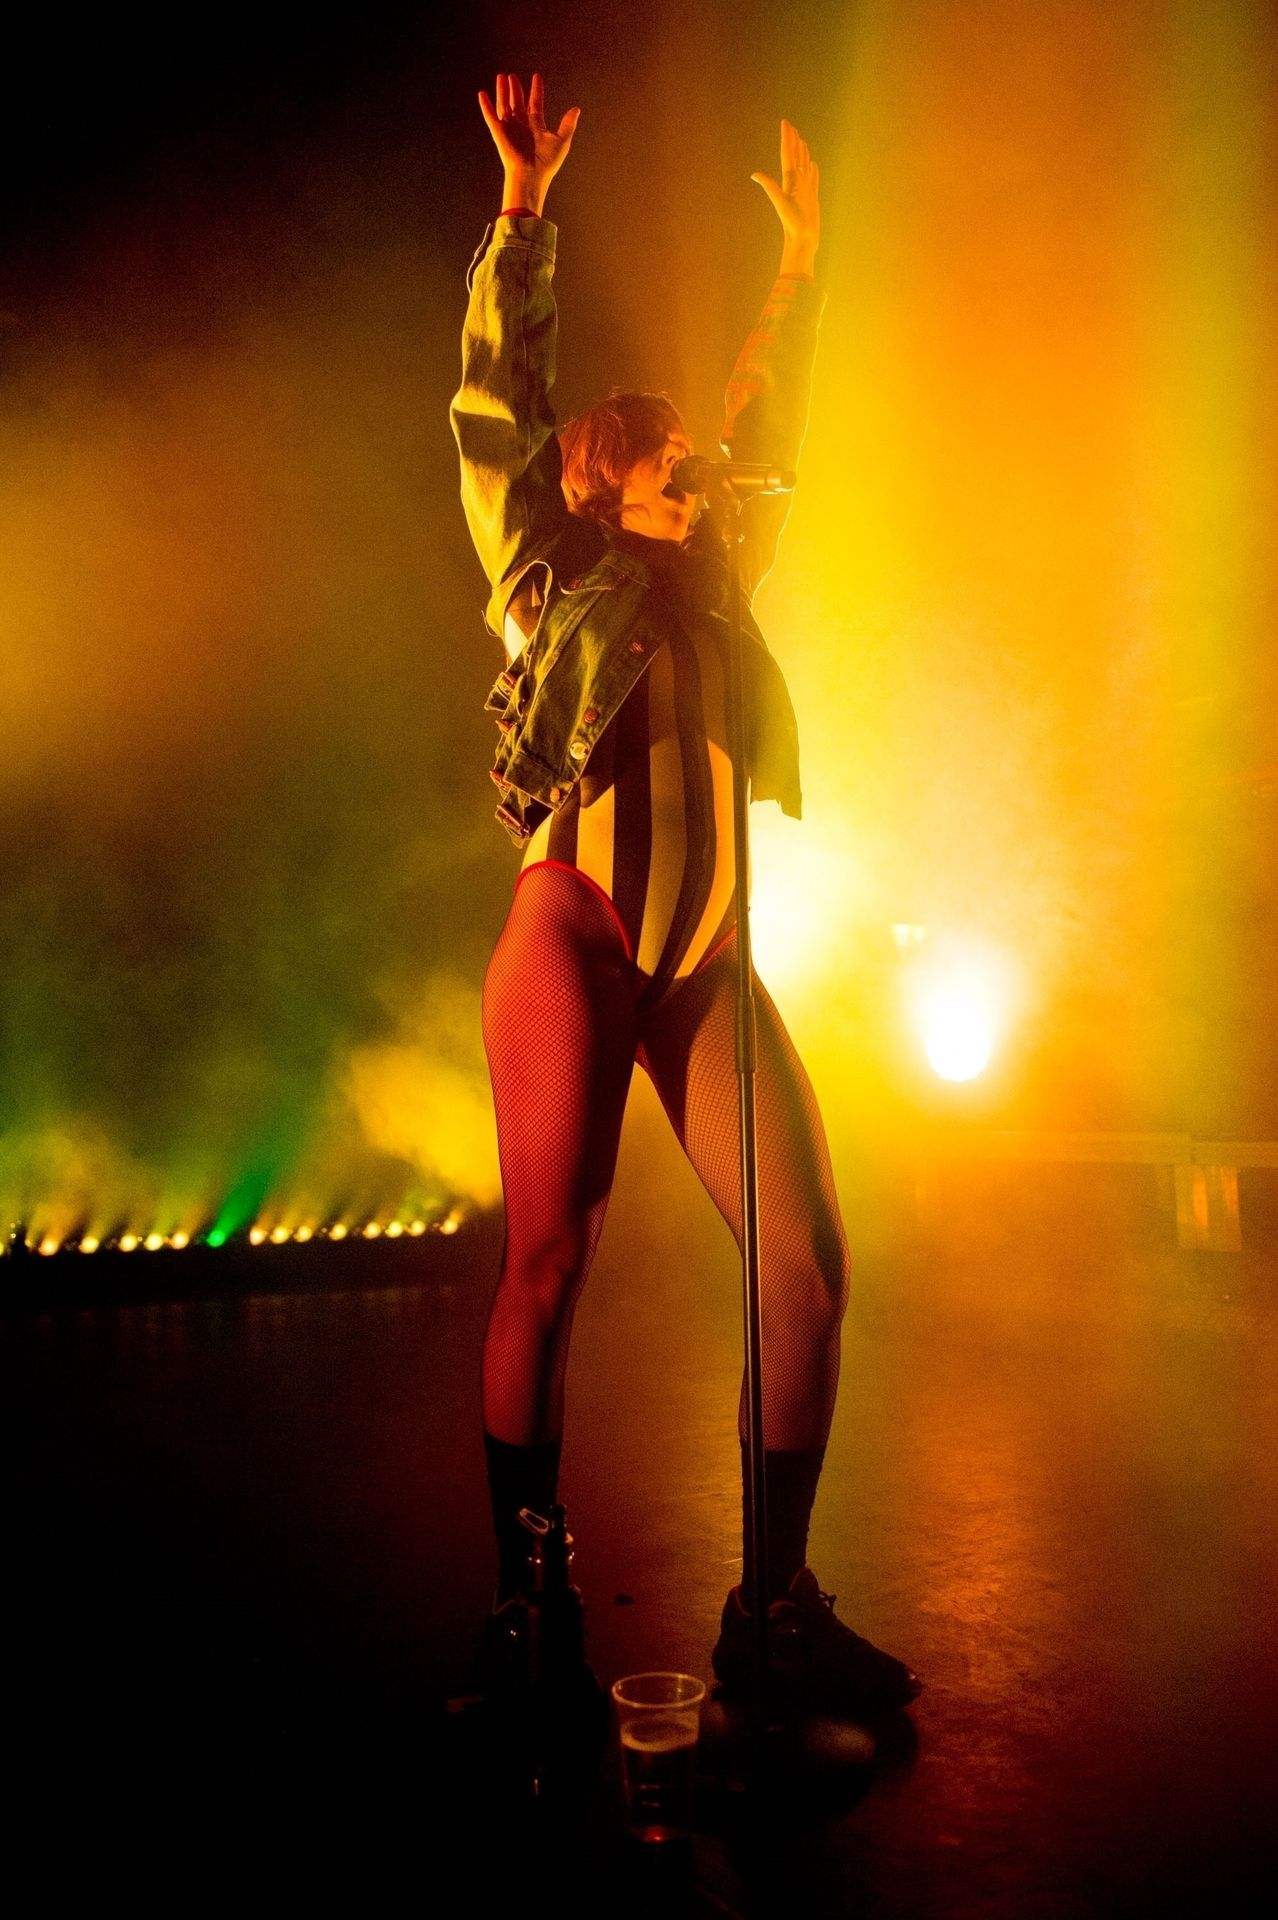 Tove Lo Is In Concert Performing Live At O2 Forum Kentish Town In London 0074